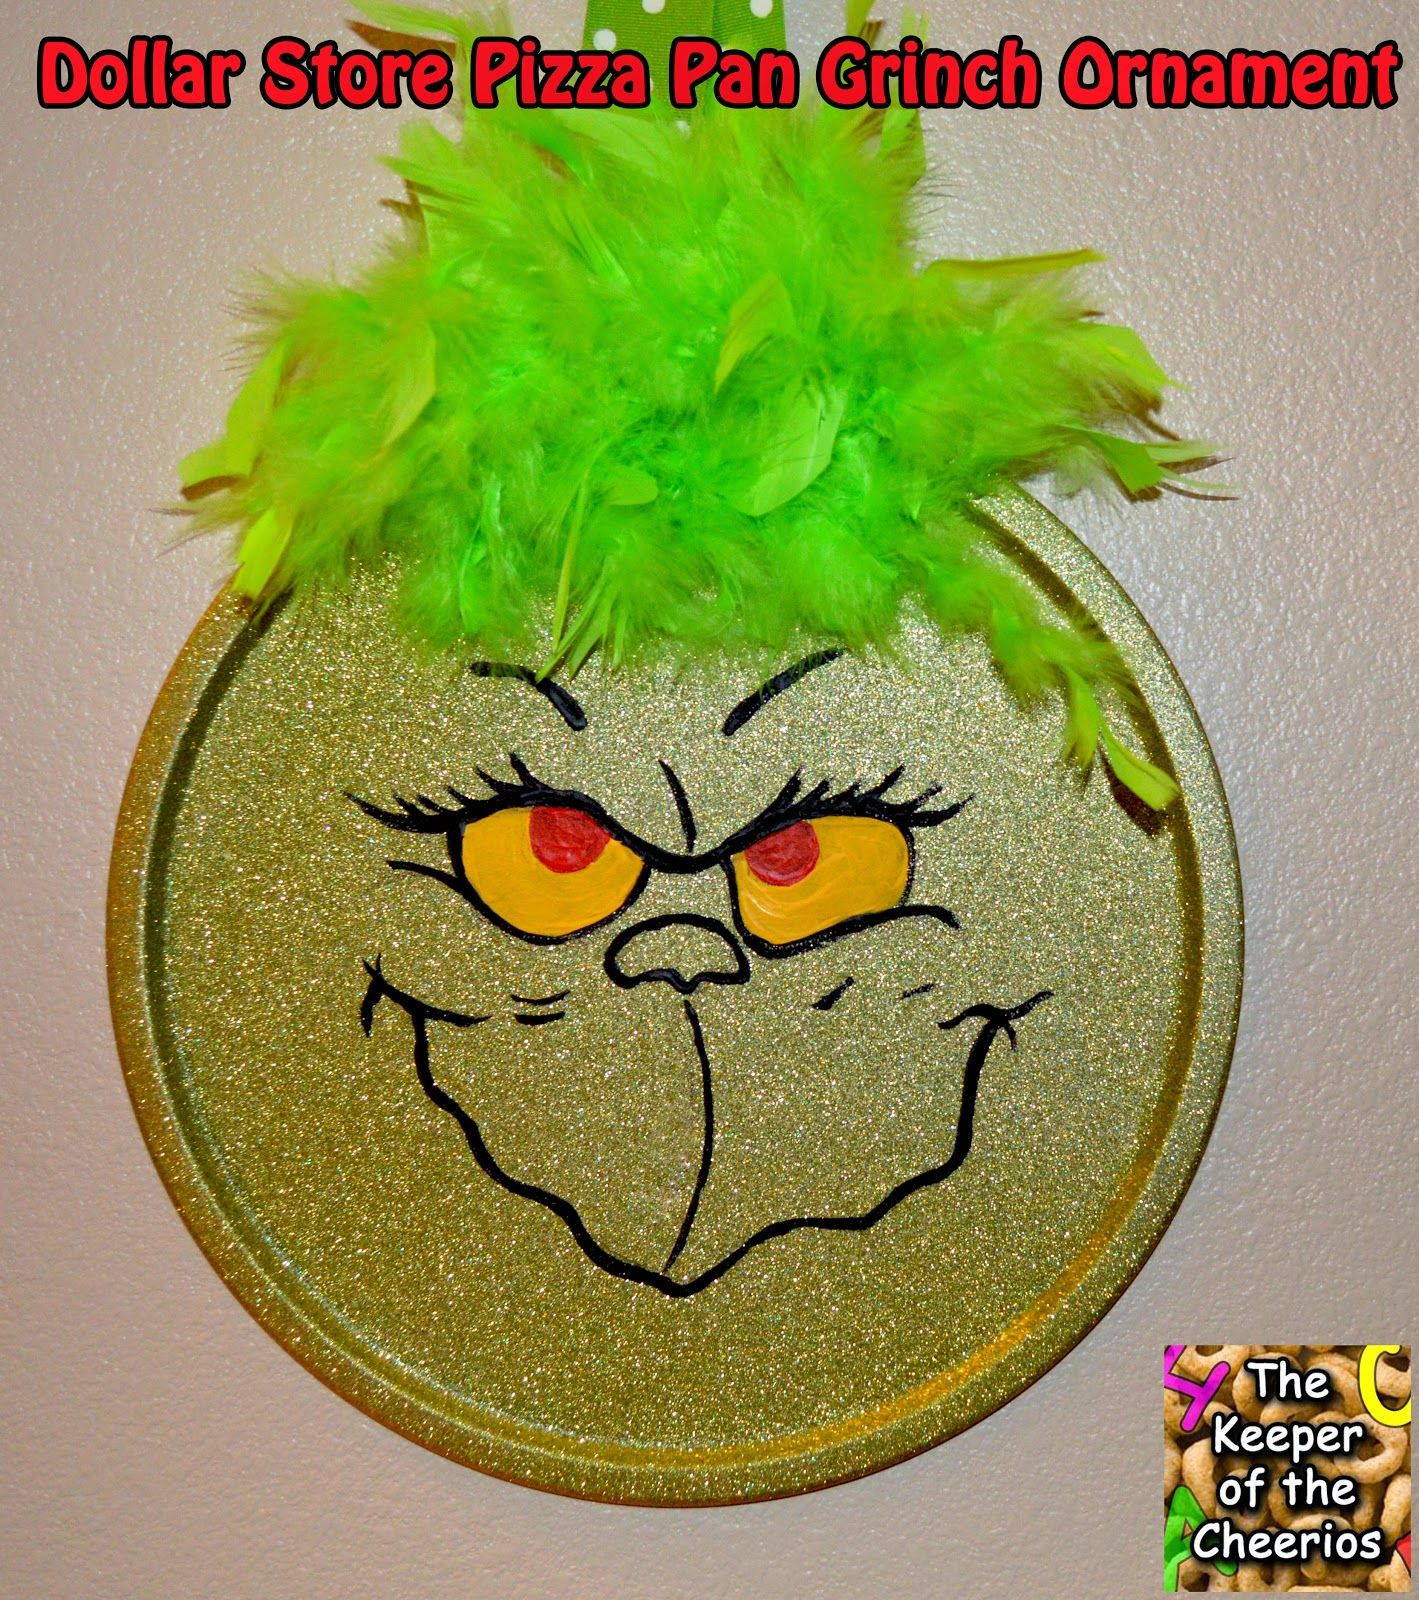 Dollar Store Pizza Pan Grinch Ornament | Christmas | Pinterest ...